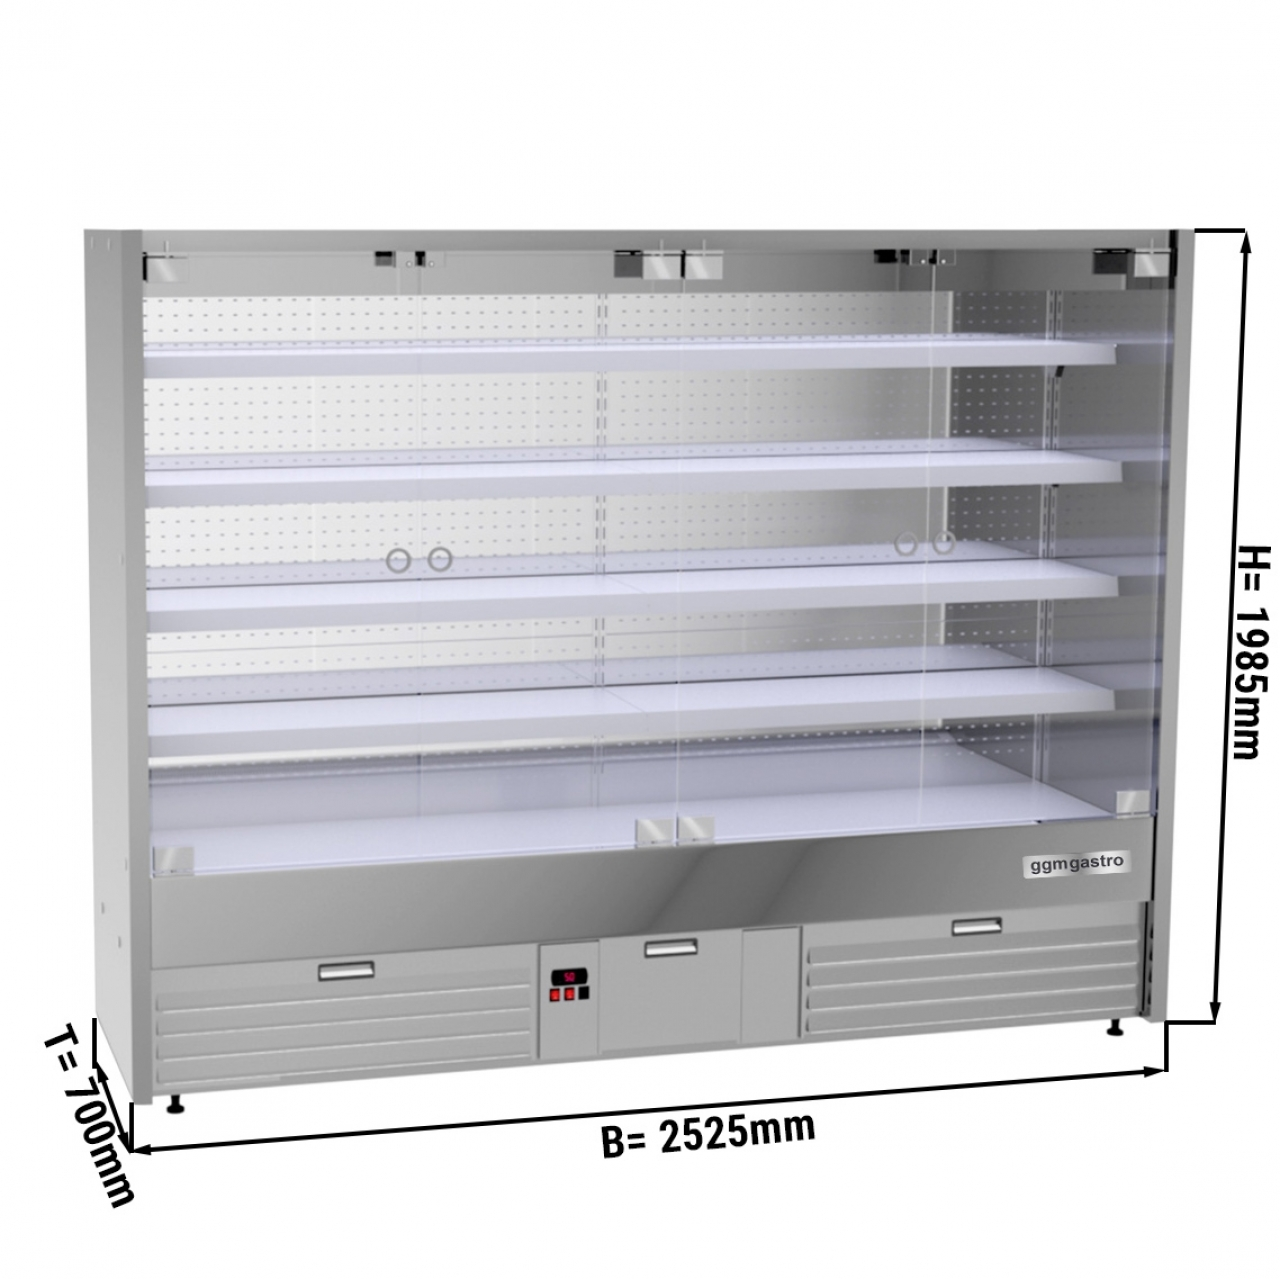 Wall cooling shelf - 2.5 x 0.7 m - with 4 shelves